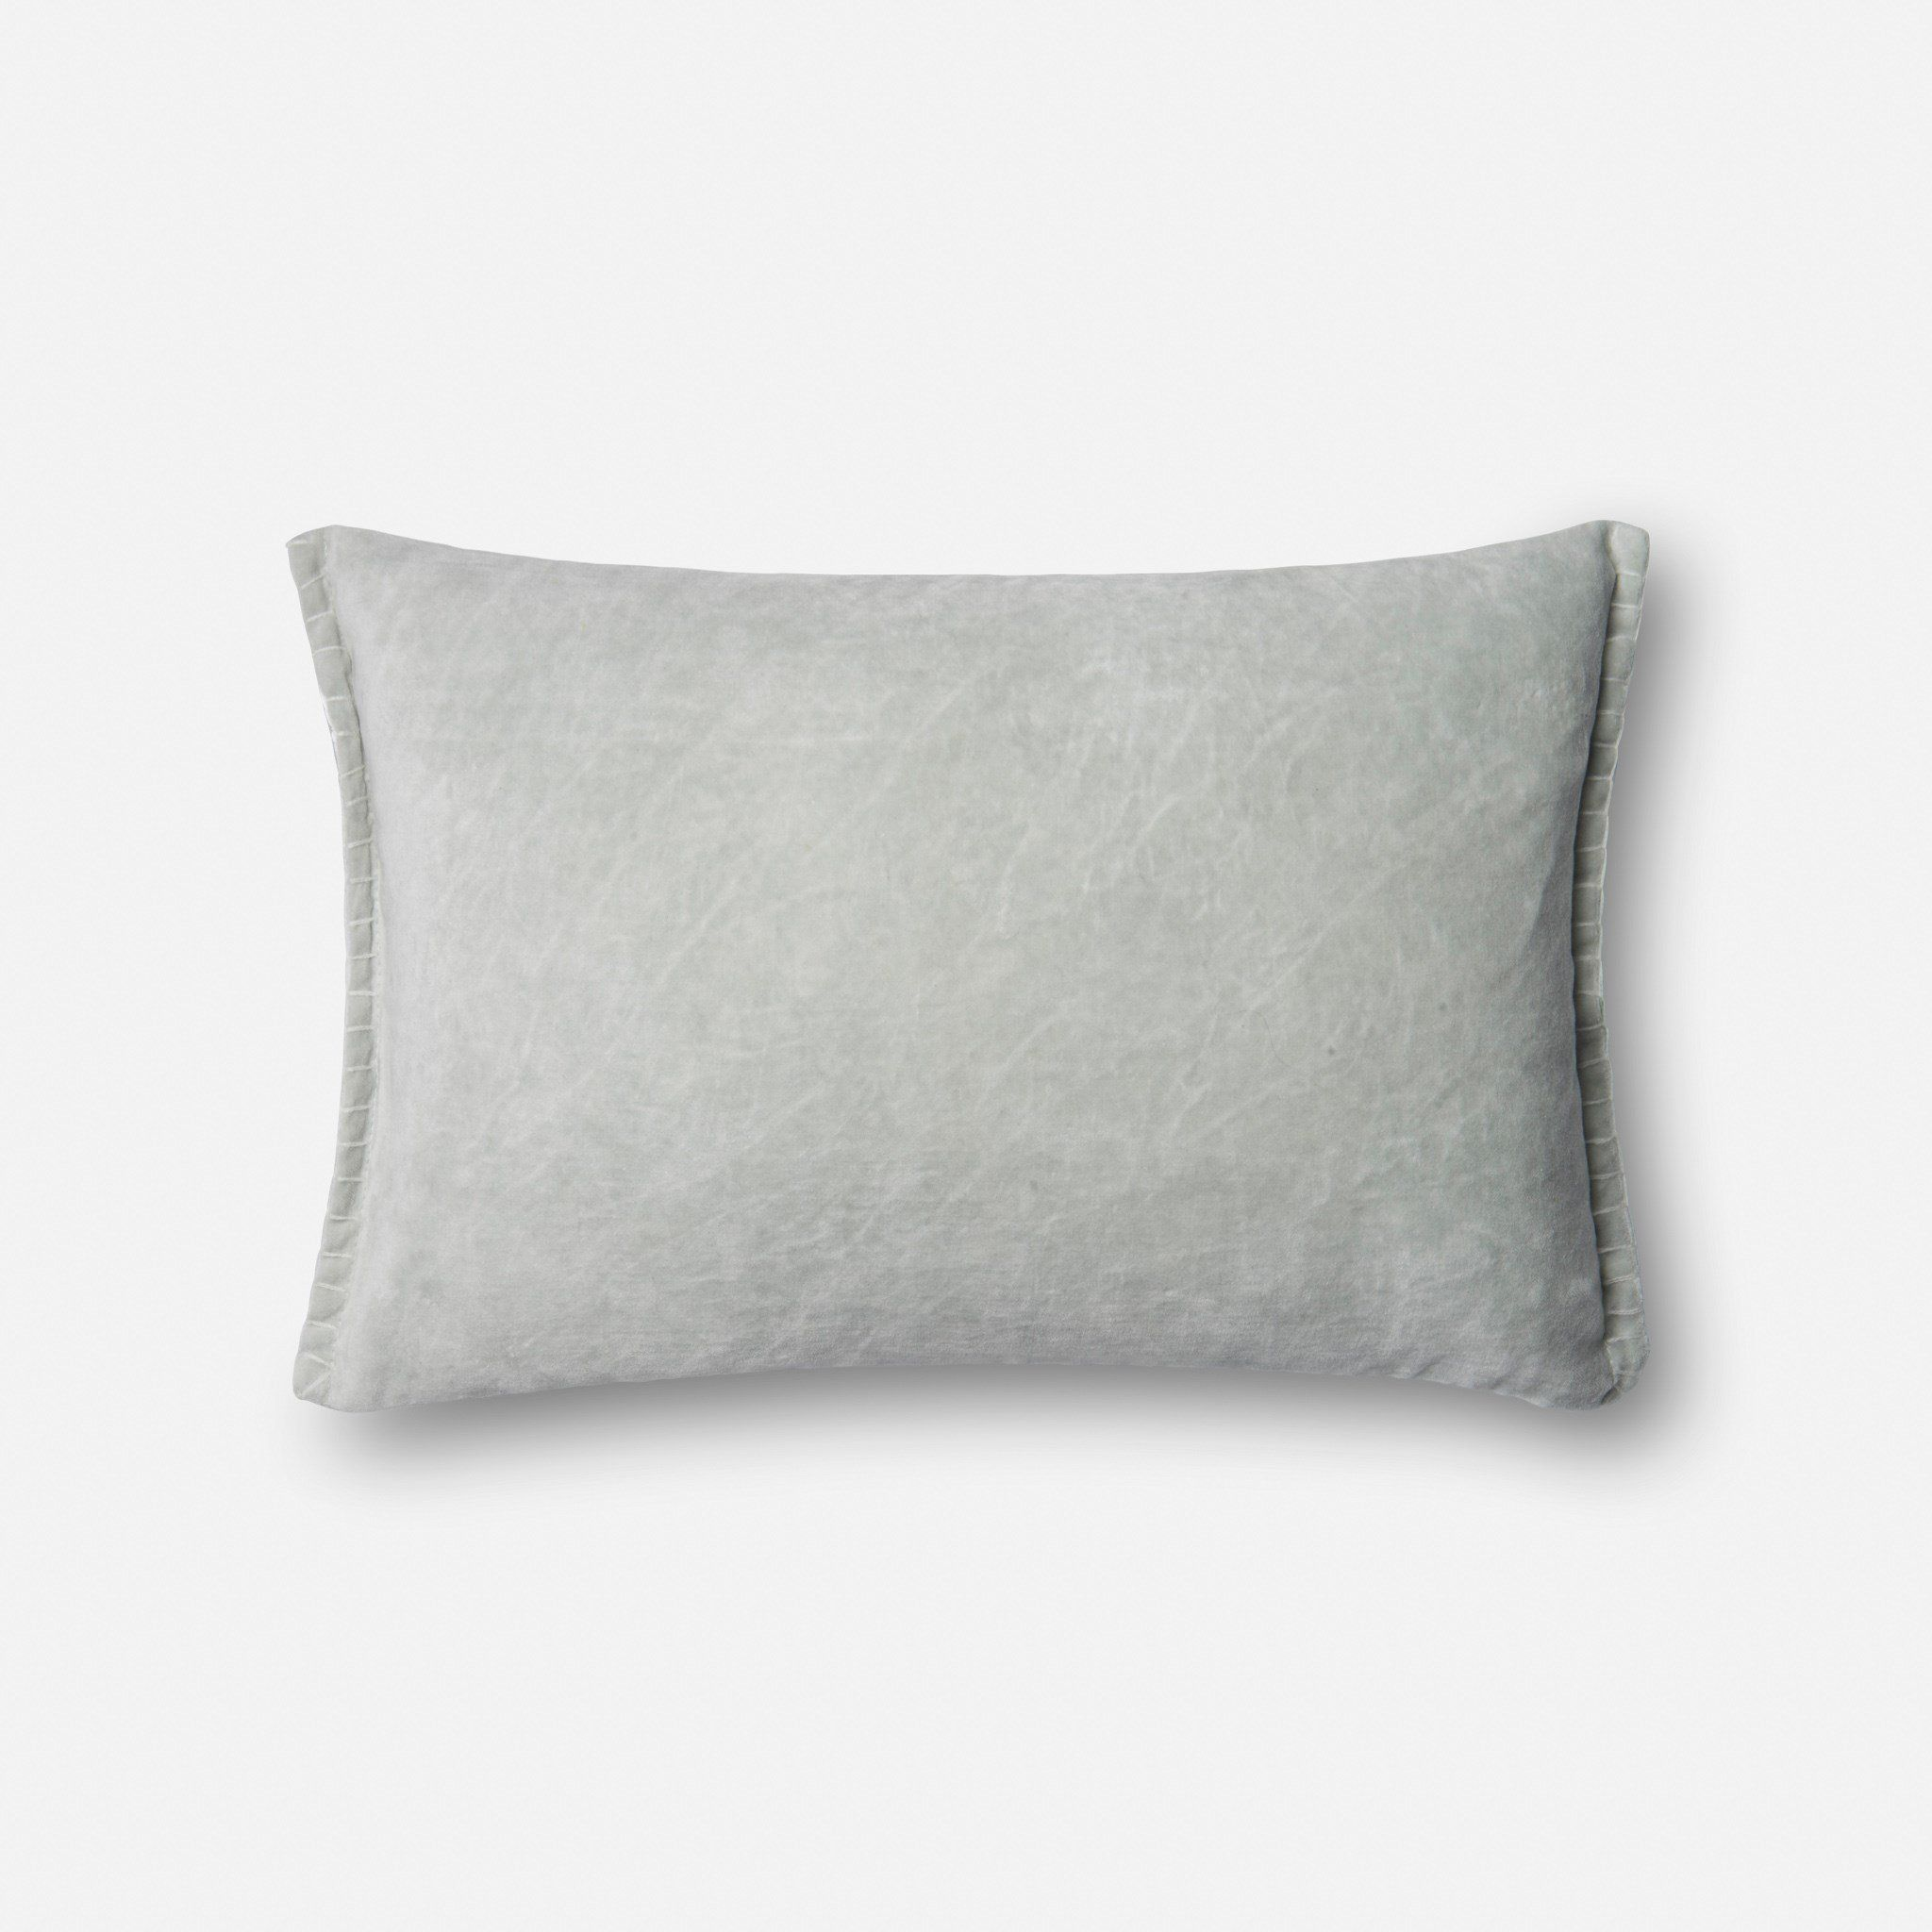 """PILLOWS - SEAFOAM GREEN - 13"""" X 21"""" Cover Only"""